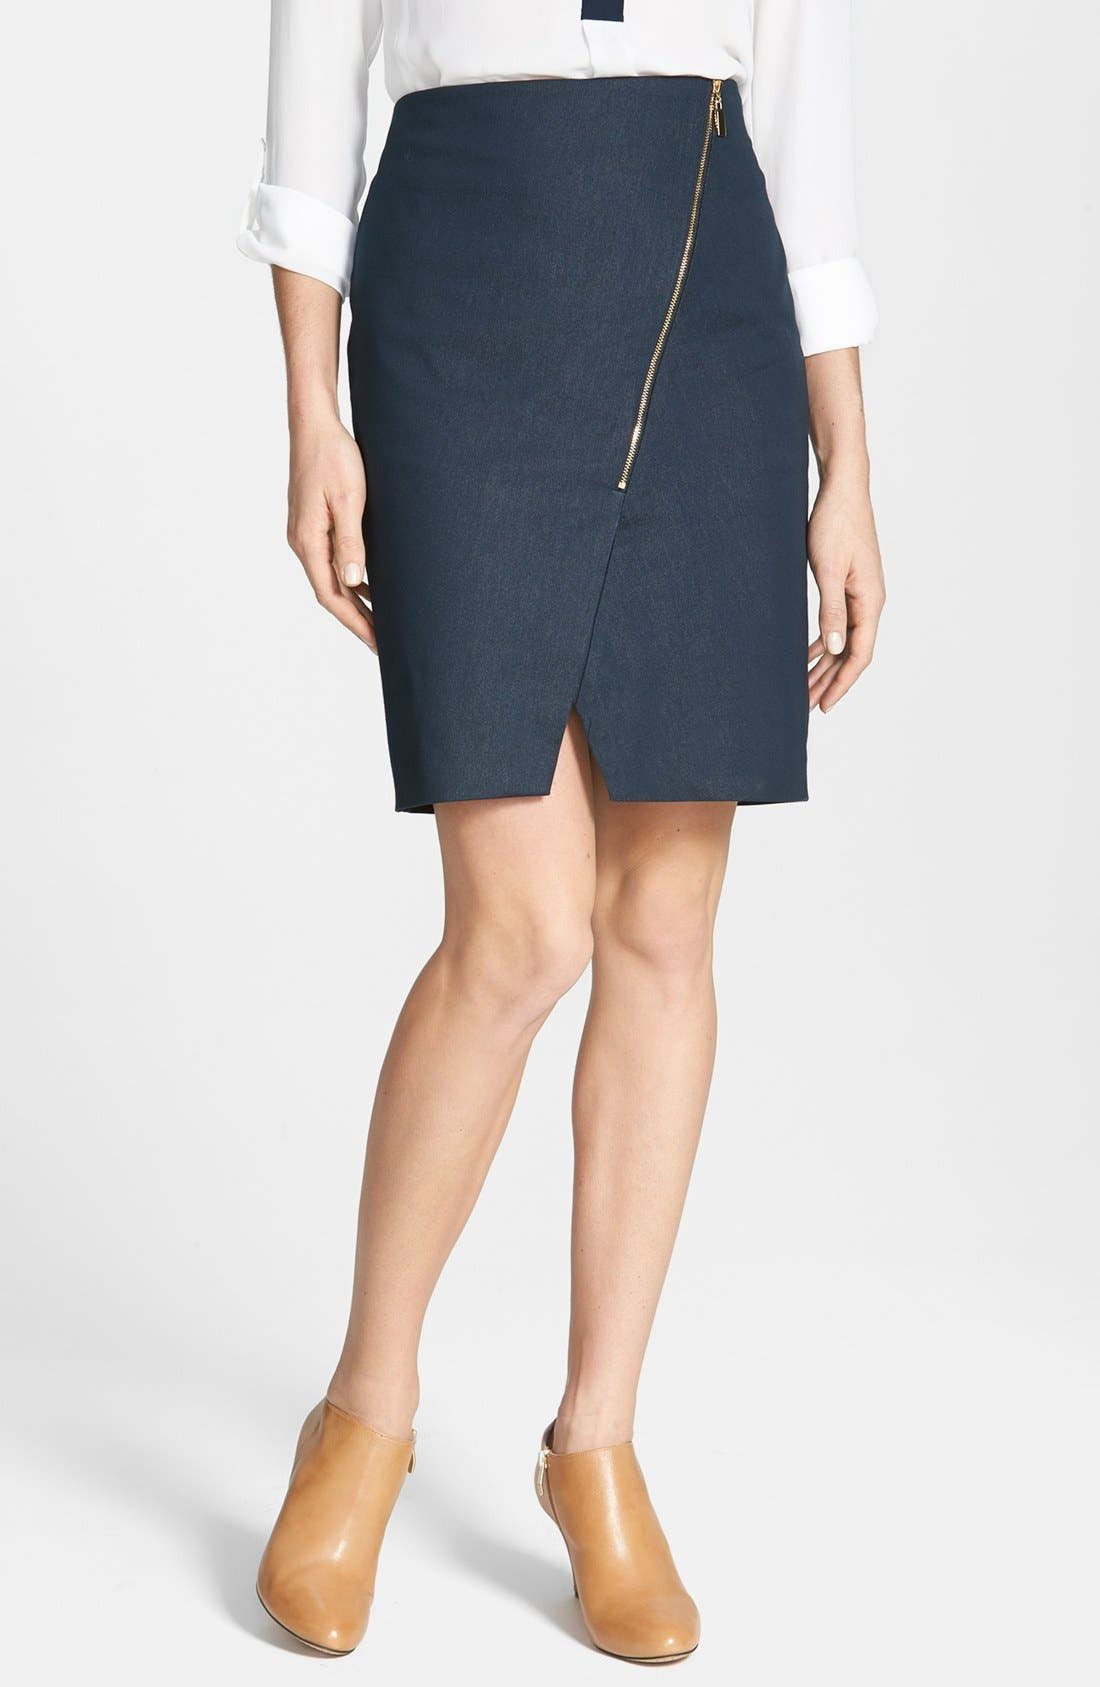 Alternate Image 1 Selected - Vince Camuto 'Smart Denim' Asymmetrical Zip Skirt (Petite)